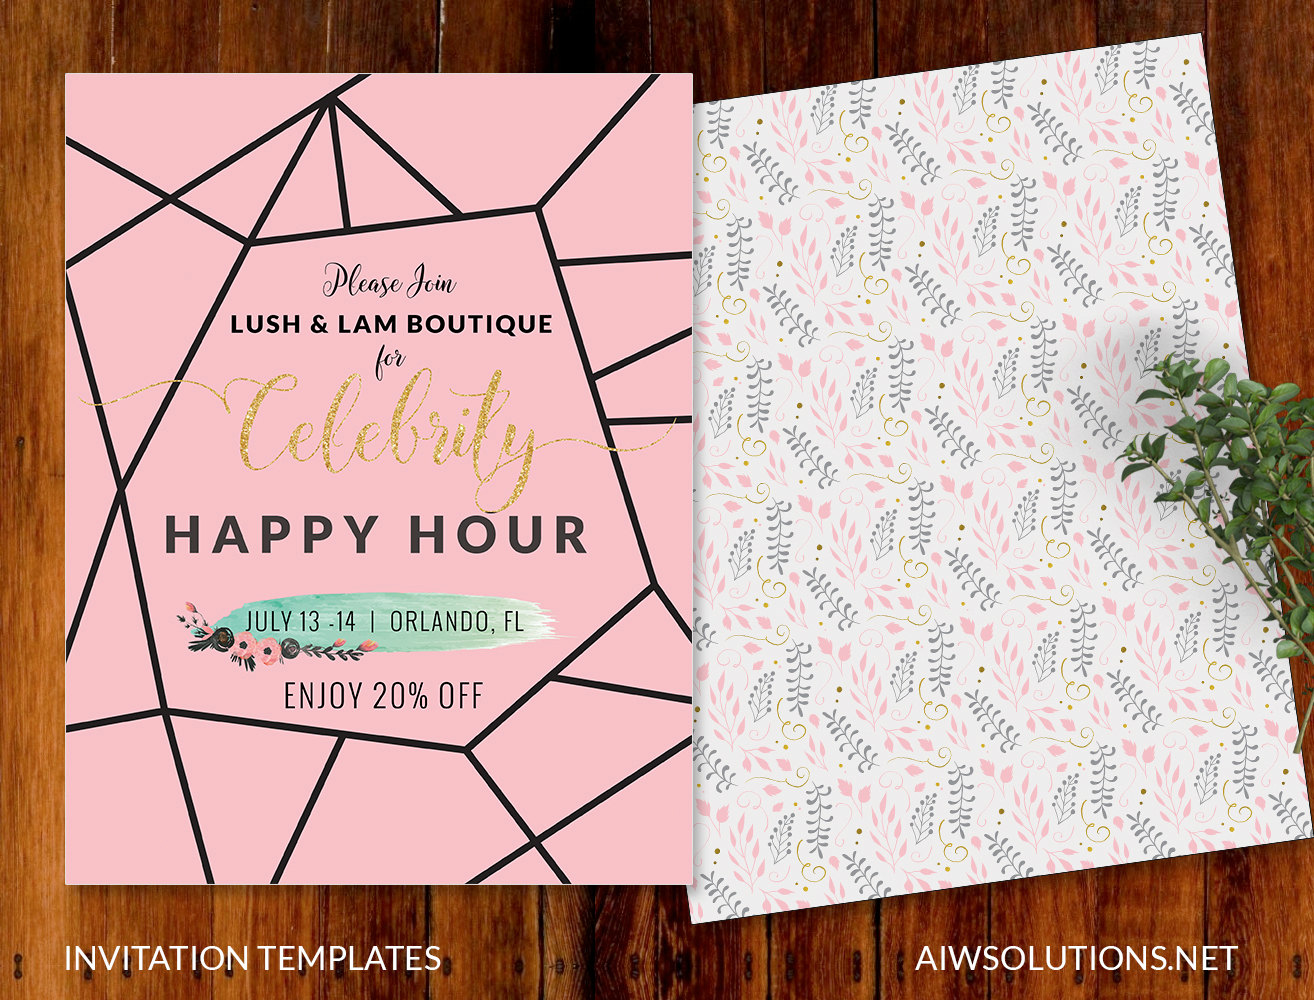 celebrity happy hour invitation template , pink and gold invitation template